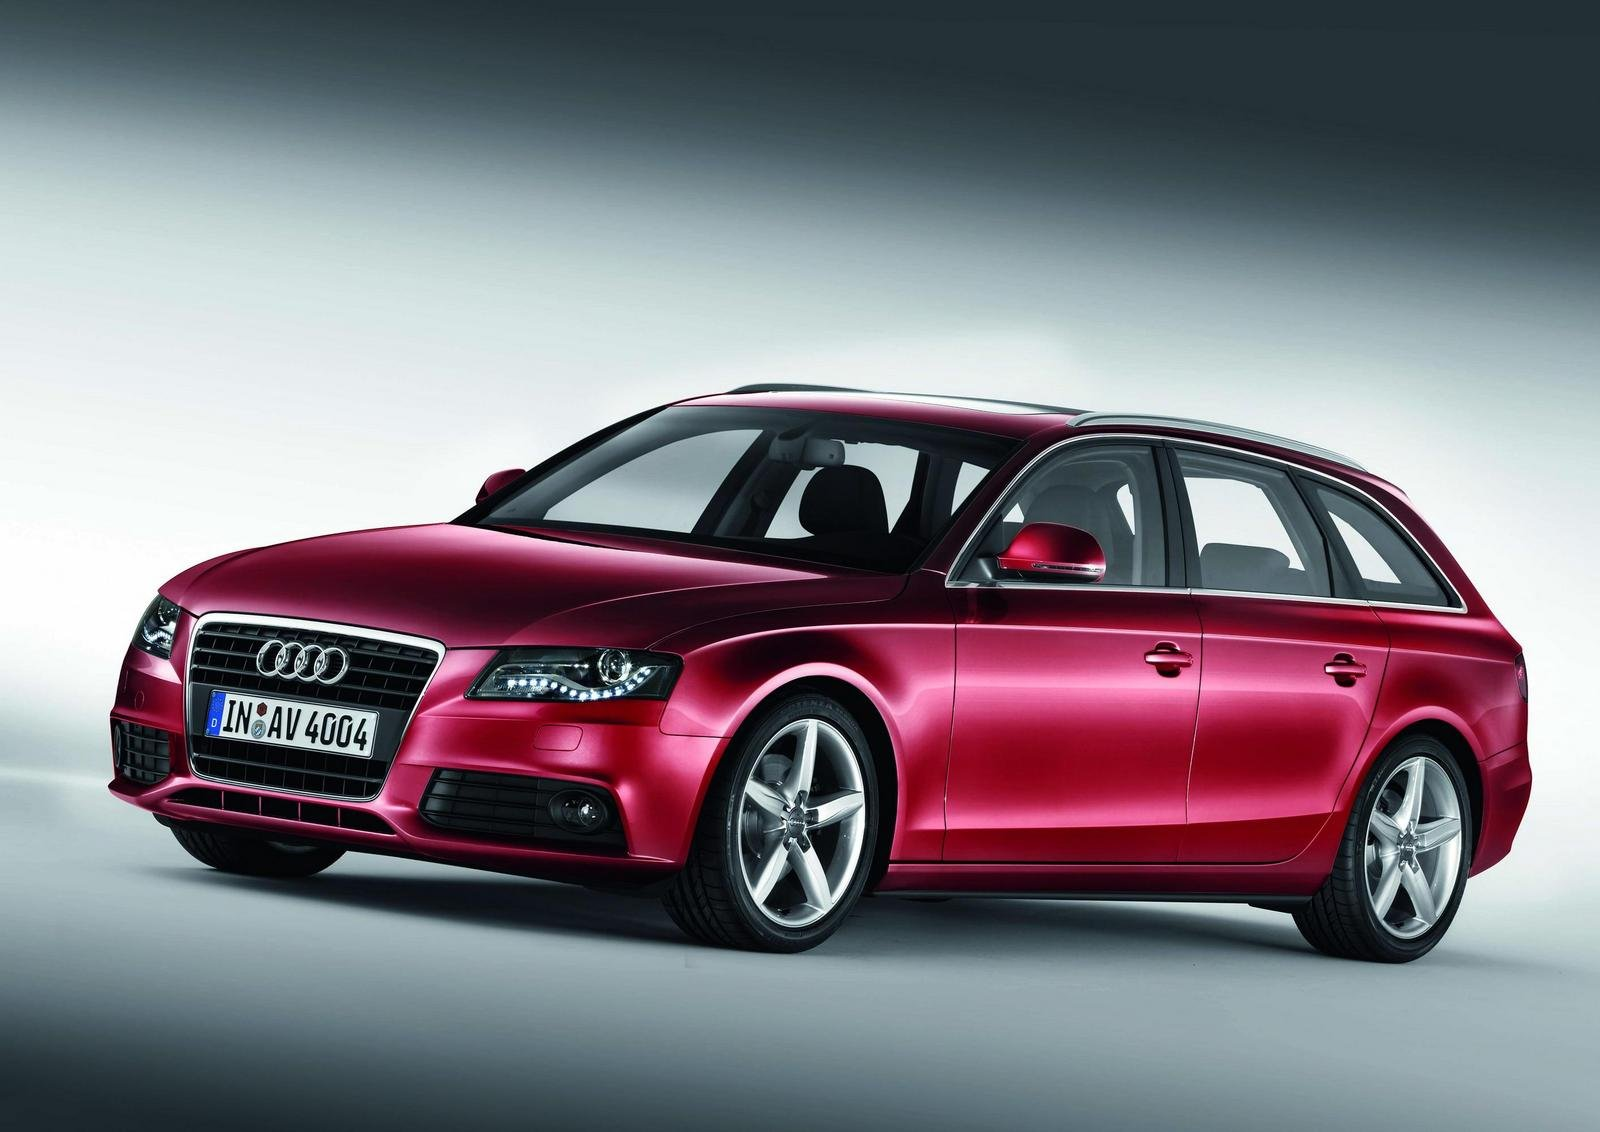 2009 audi a4 avant review top speed. Black Bedroom Furniture Sets. Home Design Ideas